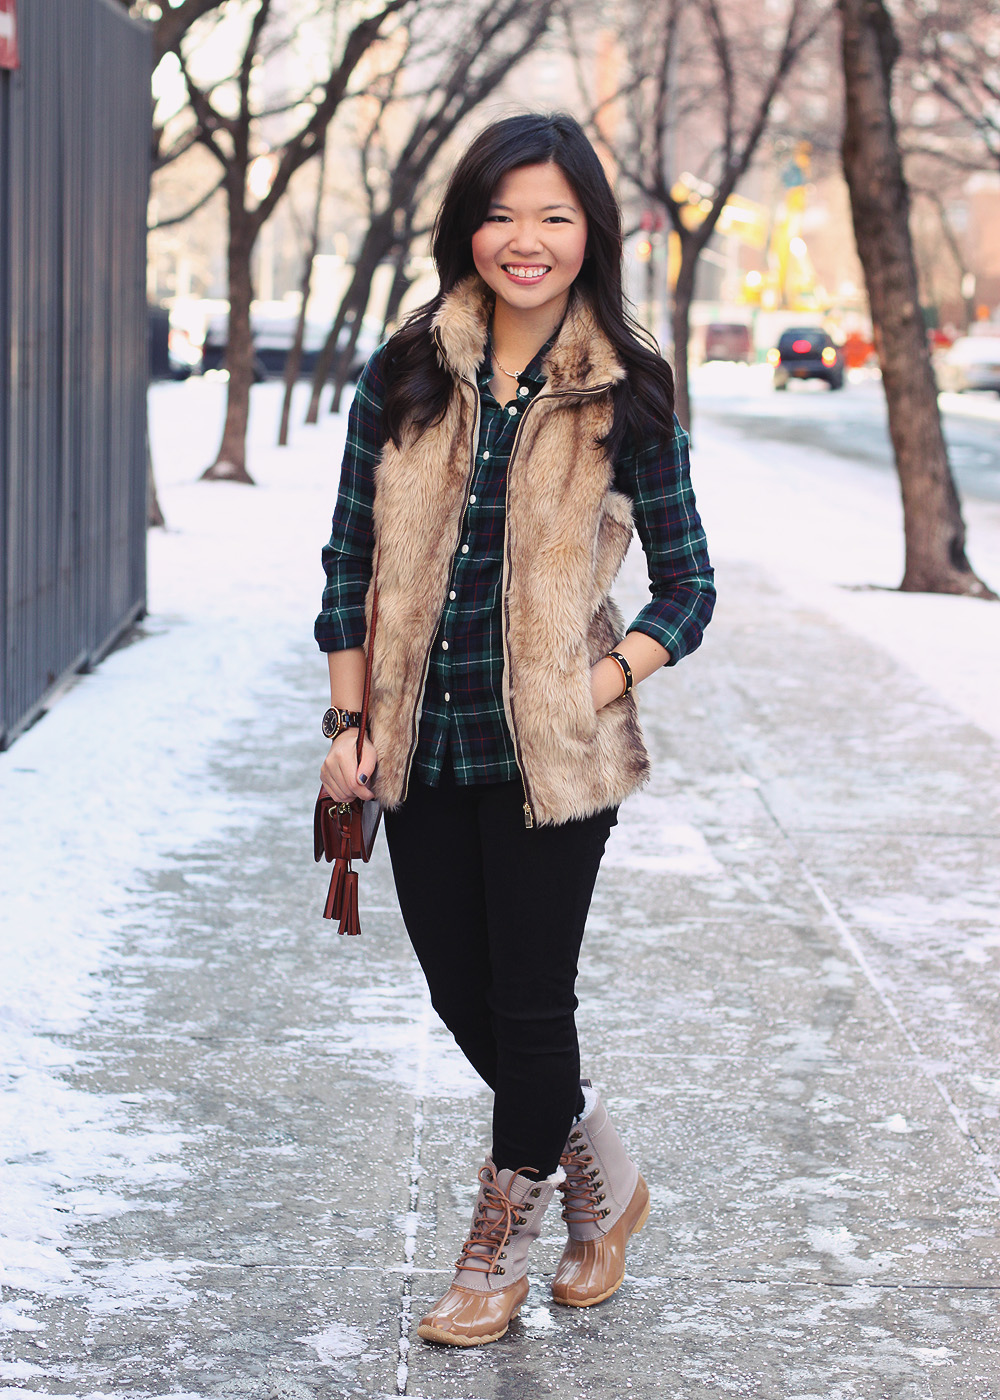 Flannel fur skirt the rules life style in nyc for Best dress shirts nyc